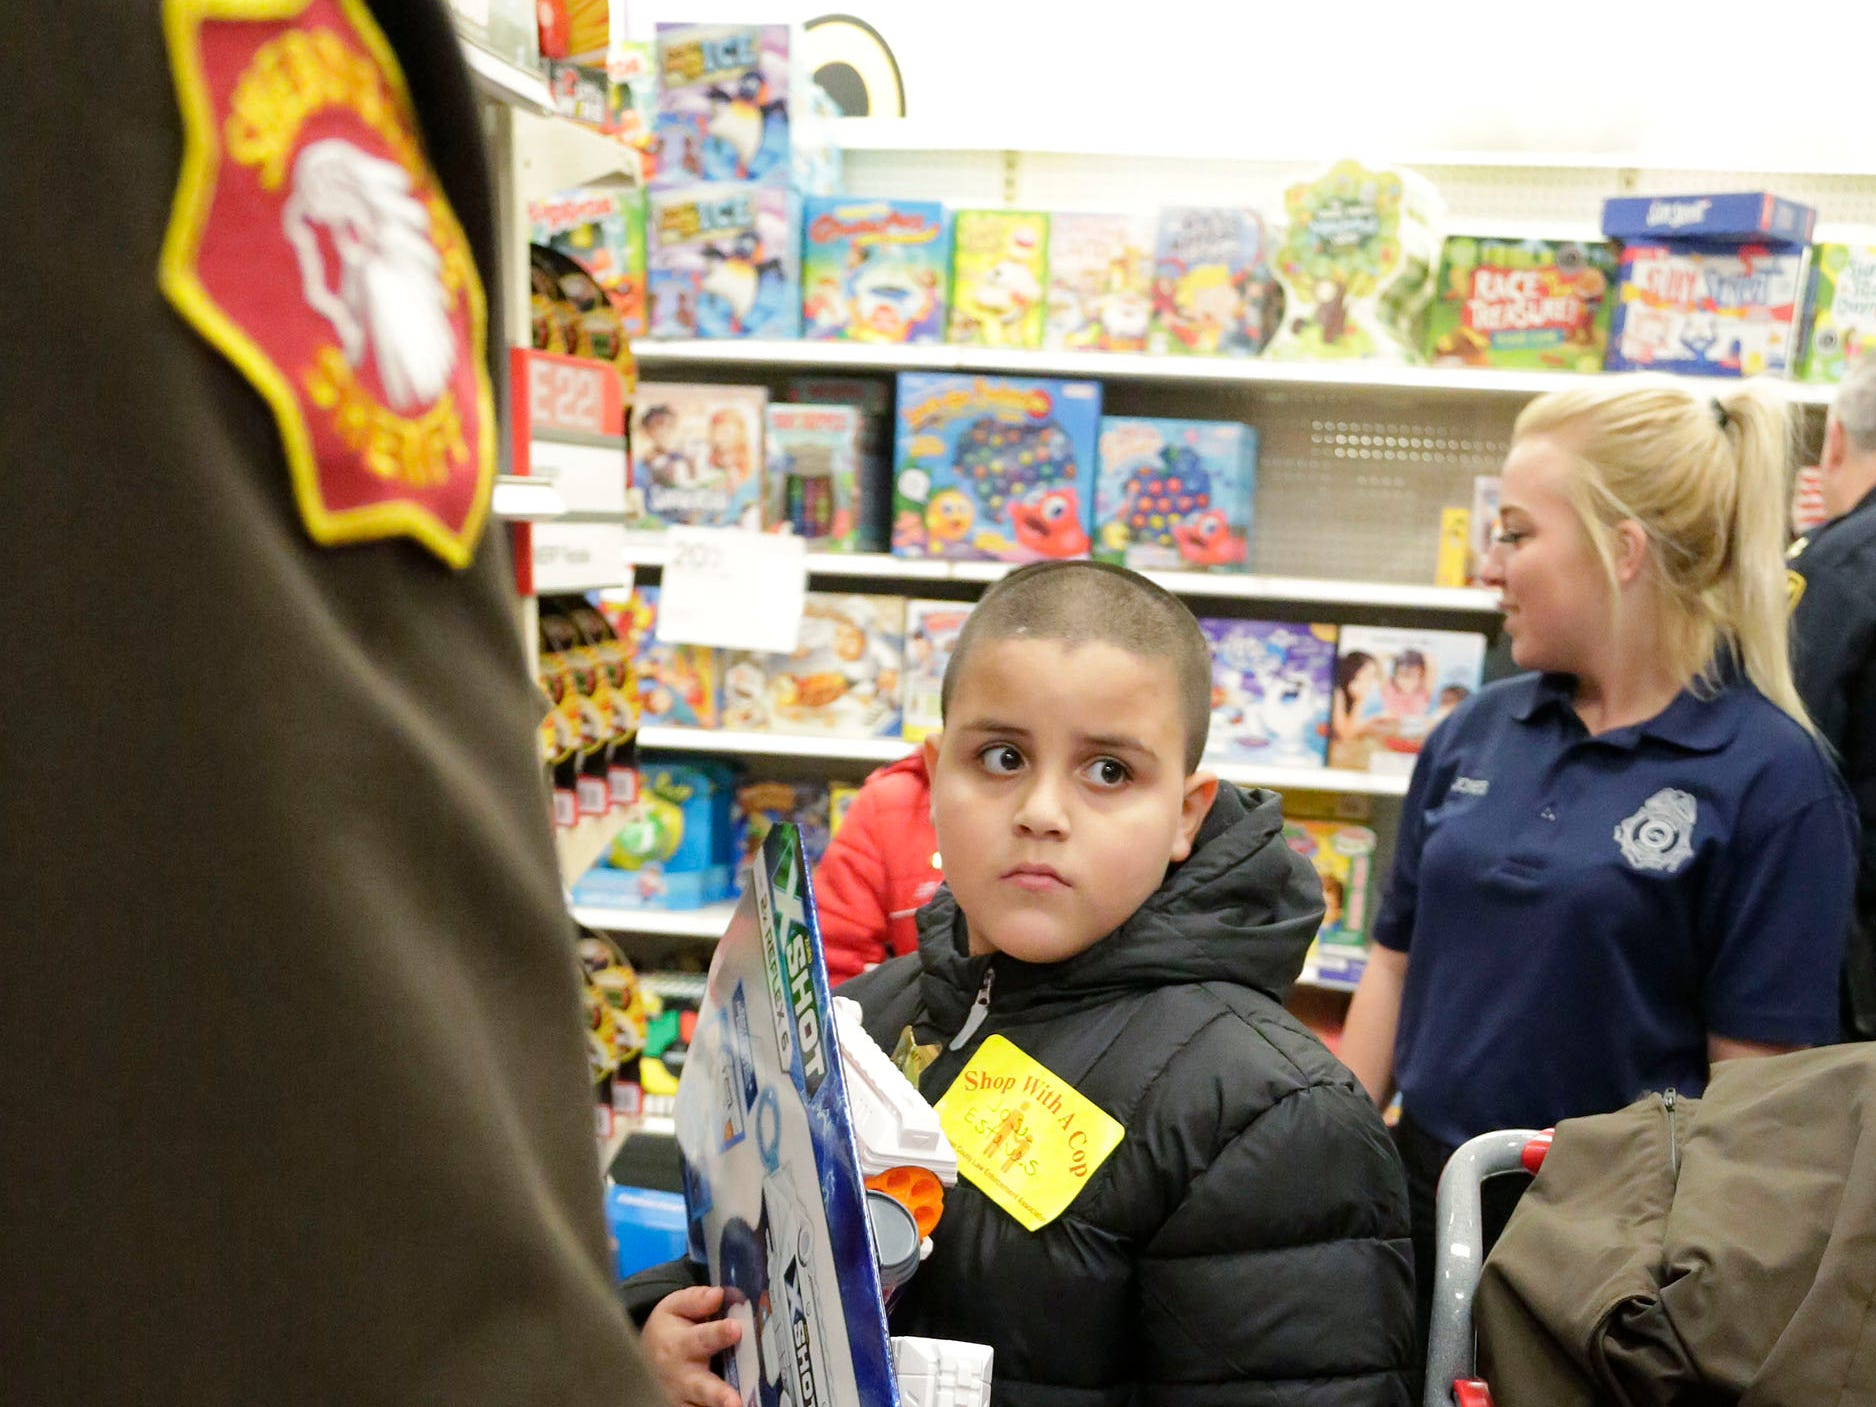 Jose Esteves, 8, of Sheboygan, Wis., holds a toy he selected during Shop with a Copy, Tuesday, December 4, 2018, in Kohler, Wis. The program, in its 21st year, raises funds to give children a chance to buy holiday gifts that they otherwise might not receive.